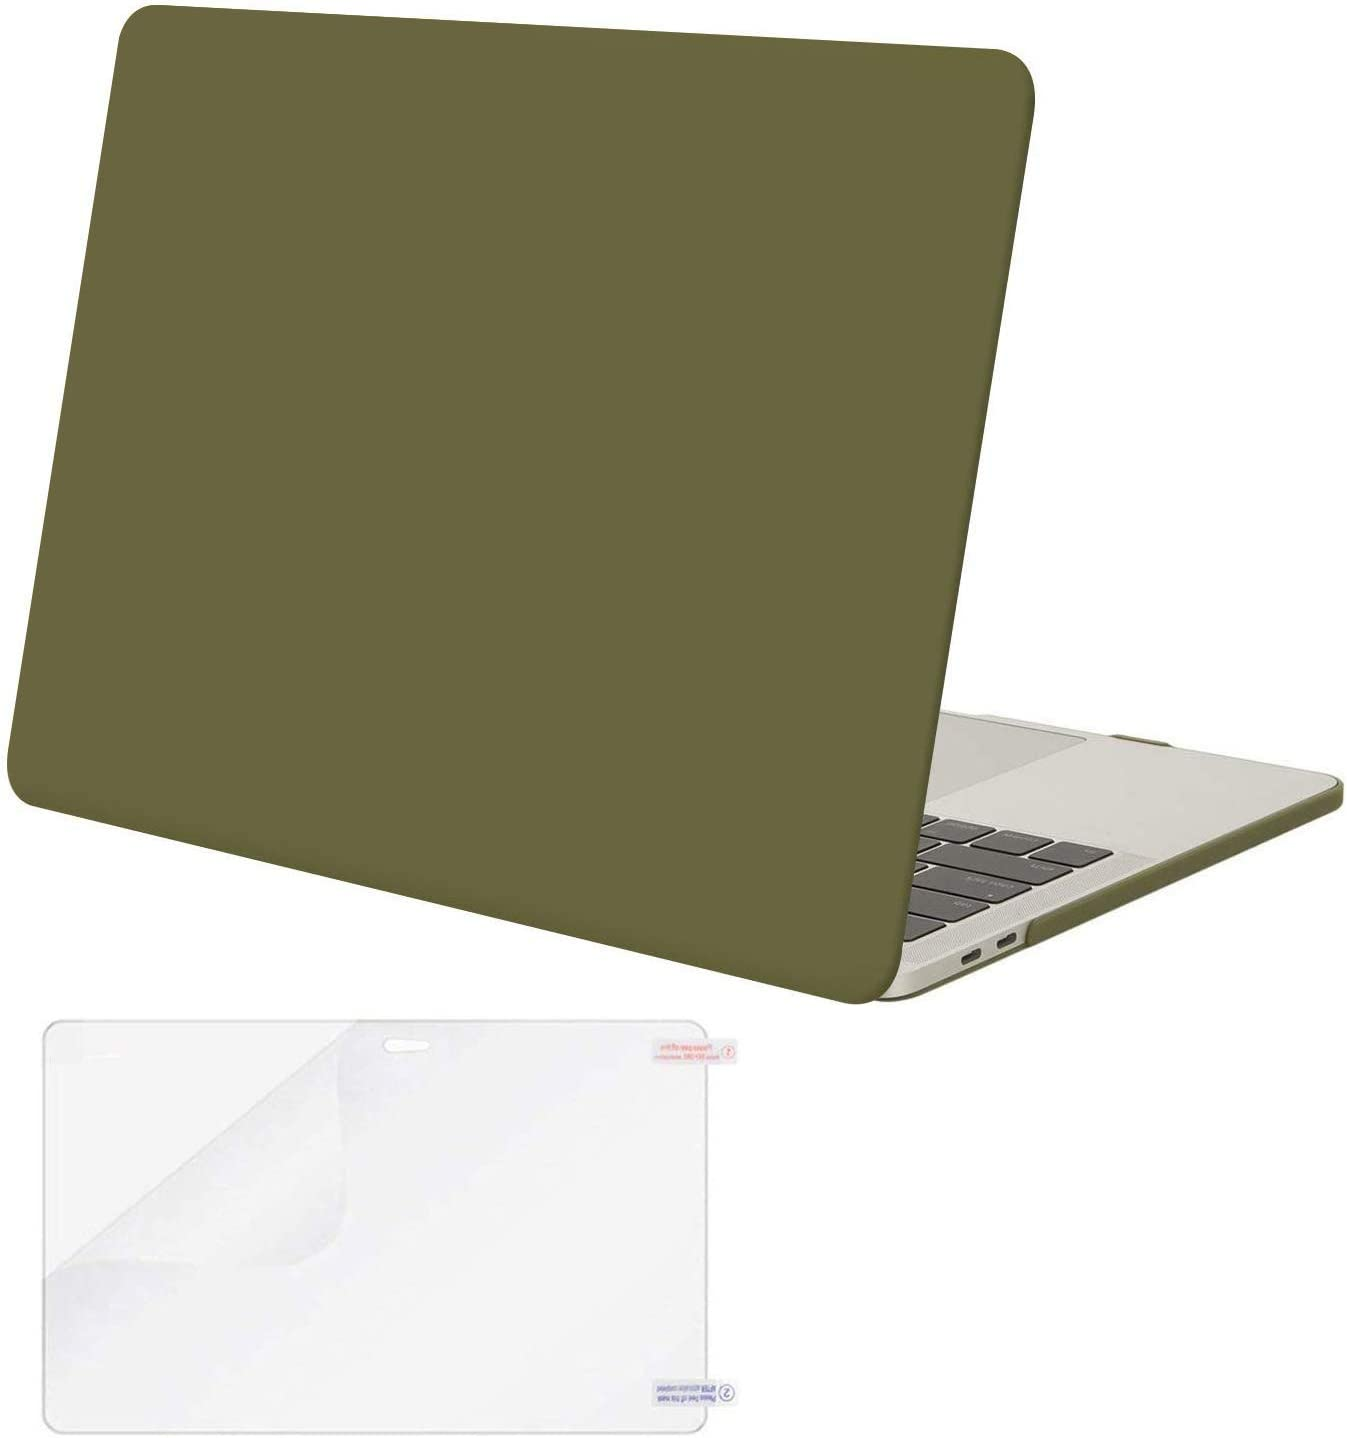 MOSISO MacBook Pro 13 inch Case 2019 2018 2017 2016 Release A2159 A1989 A1706 A1708, Plastic Hard Shell Case&Screen Protector Compatible with MacBook Pro 13 inch with/Without Touch Bar, Capulet Olive